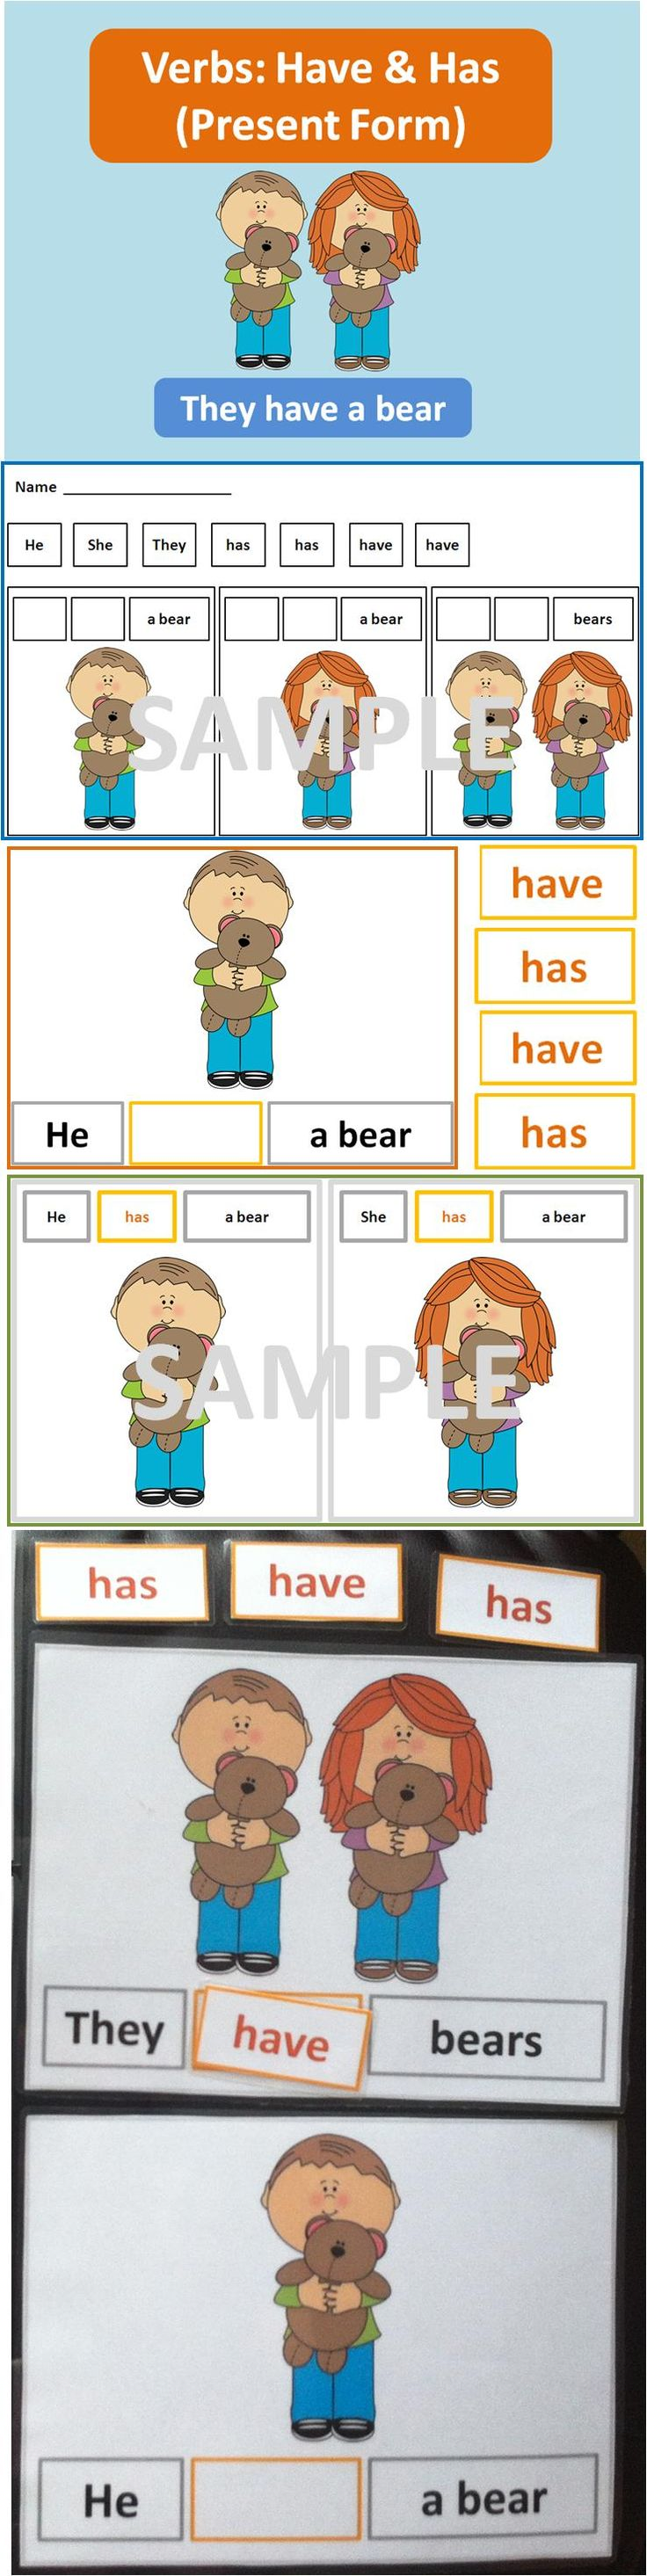 Verbs Have and Has (Present Form) This package is designed to teach the different forms of 'have' for the subject pronouns: He, She, They